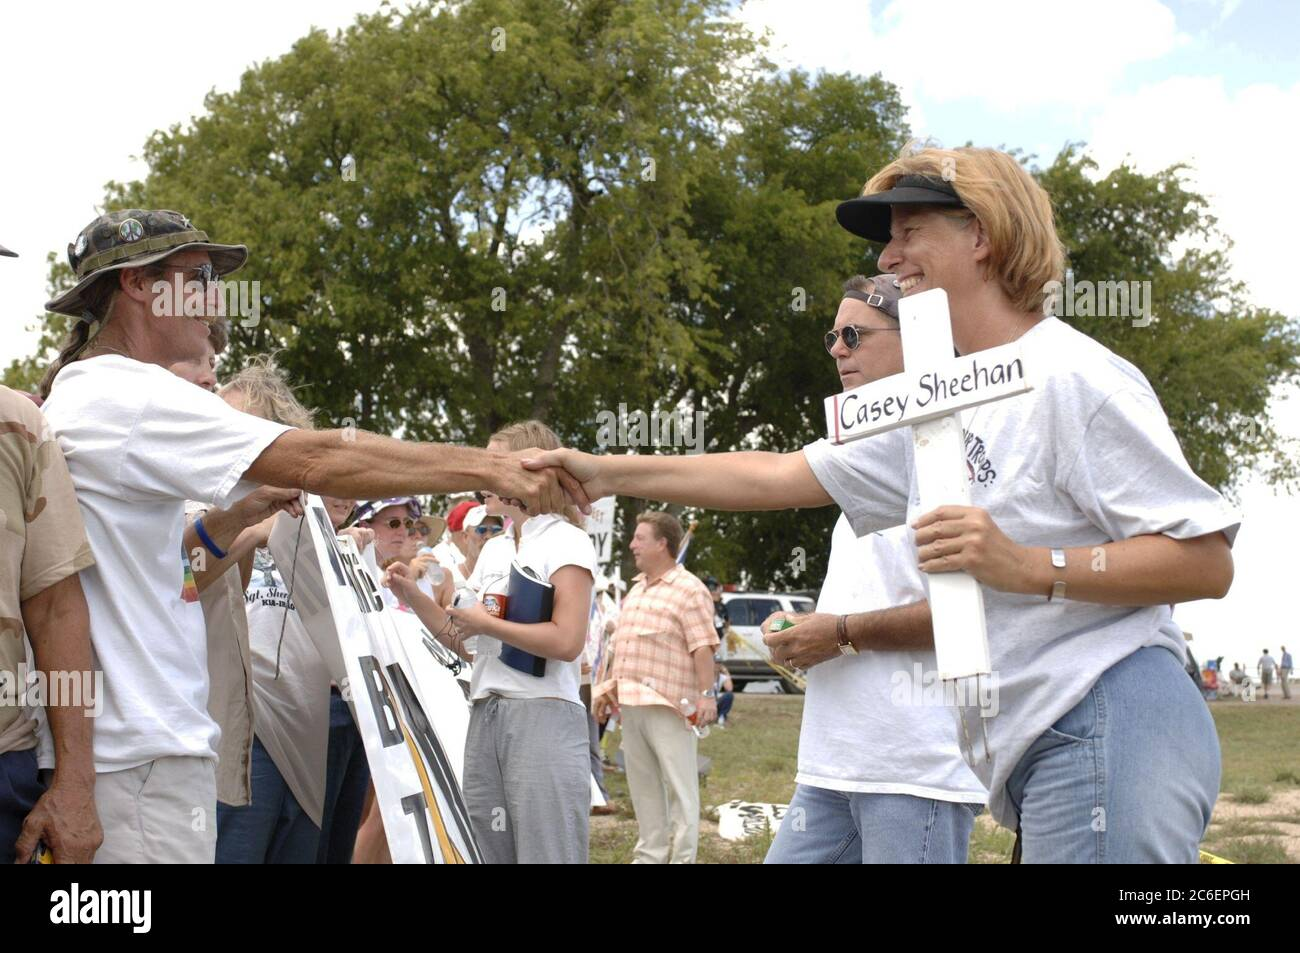 """Crawford, Texas August 12, 2005:  Anti-war protester Cindy Sheehan at the protest site known as """"Camp Casey"""" where about 100 protesters against the war in Iraq are holding a vigil during U.S. President Bush's August vacation.  ©Bob Daemmrich/ Stock Photo"""